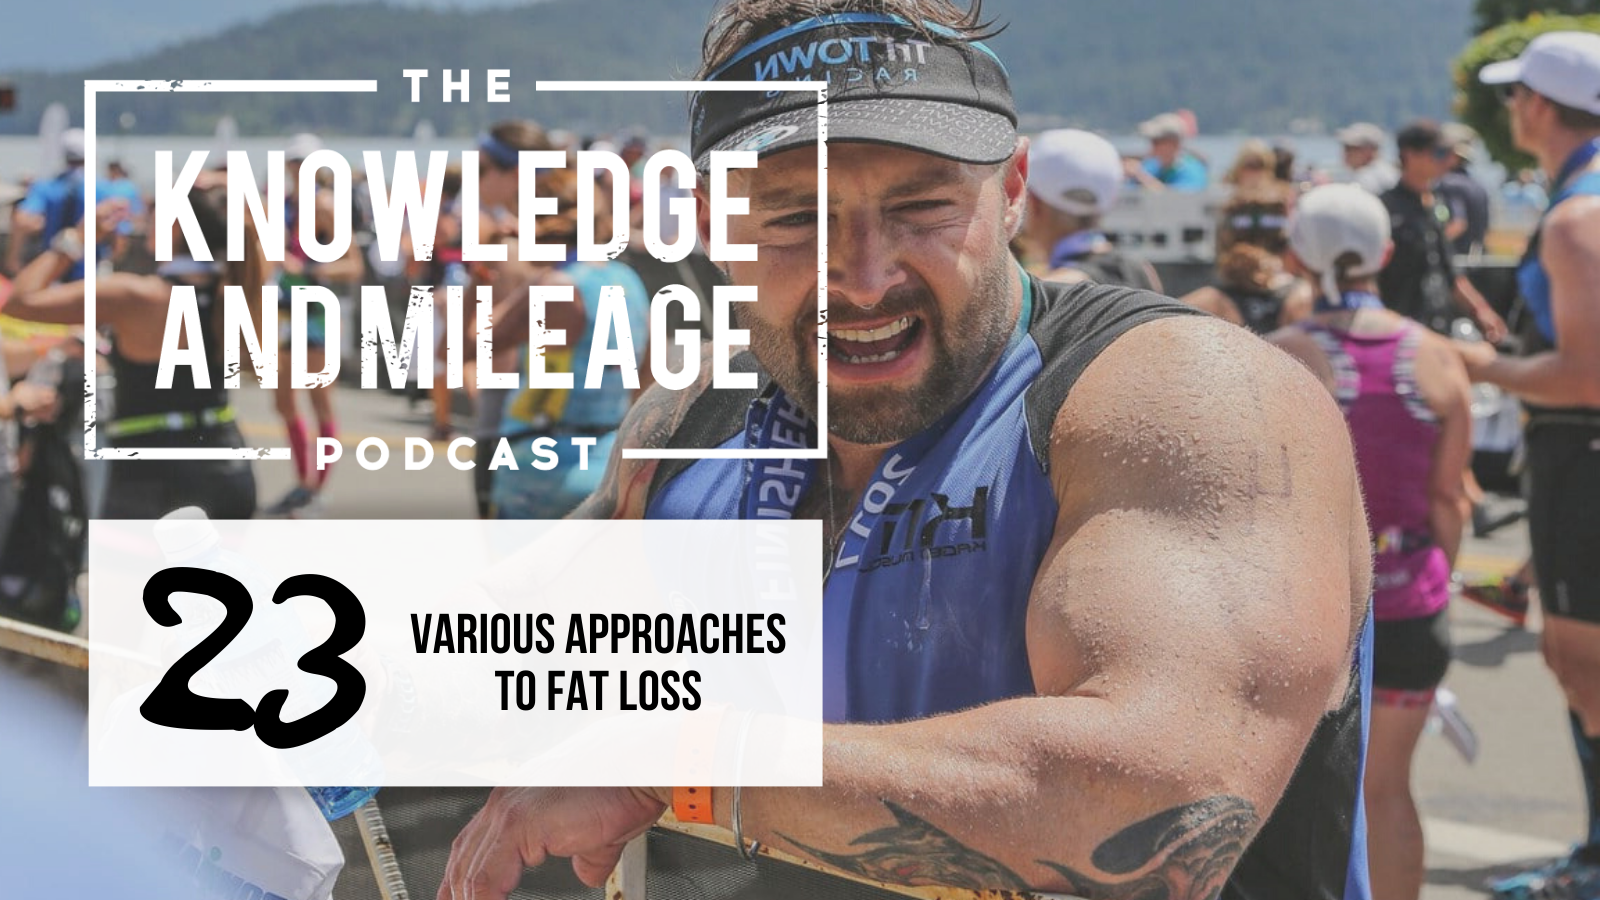 EP 23: My Various Approaches to Fat Loss